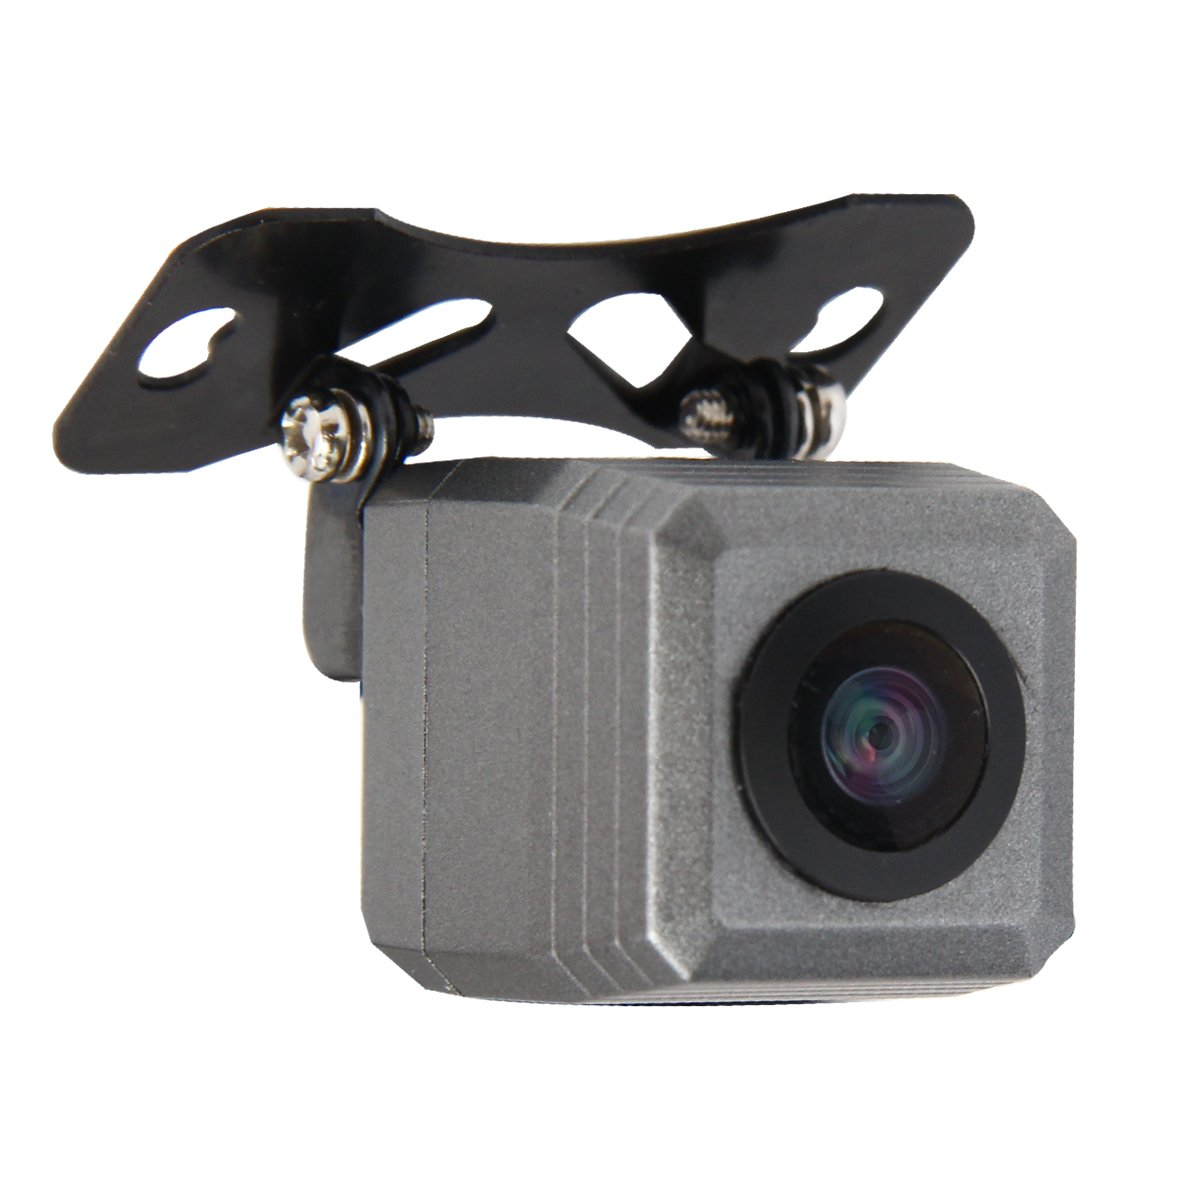 Phansthy CCD Car Reversing Camera 960 * 576 High Definition Waterproof 170 Degree View Angle Car Rearview Camera for Universal Parking Assistance System fenthy FTY2097